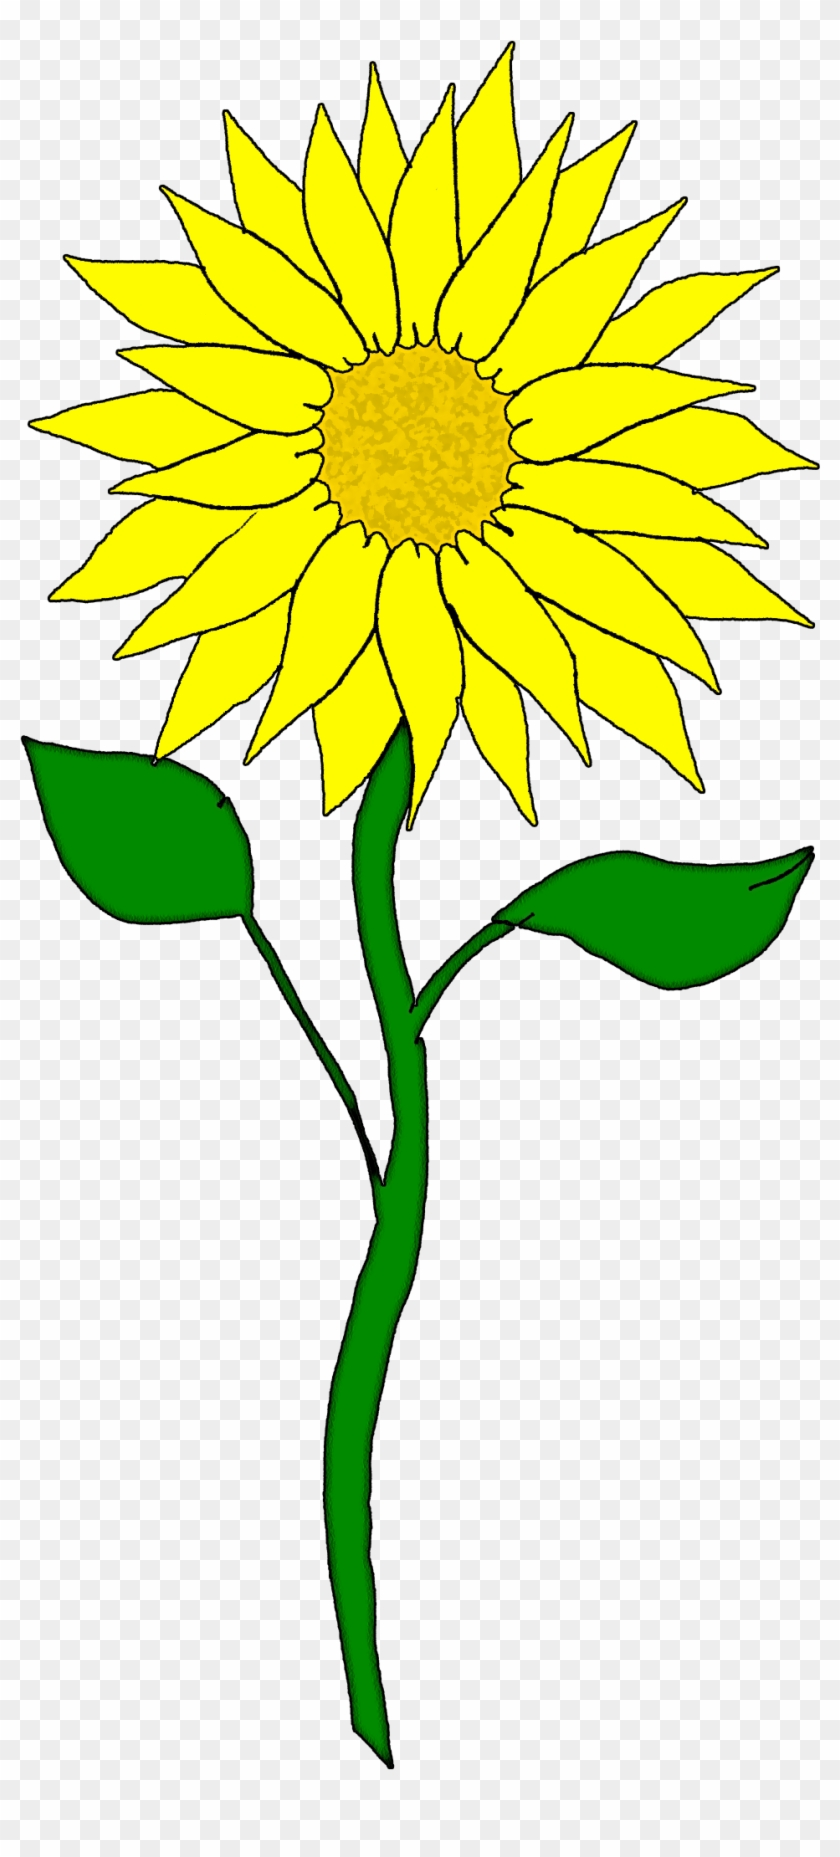 Free Flower Clipart - Sunflower Clipart #14528